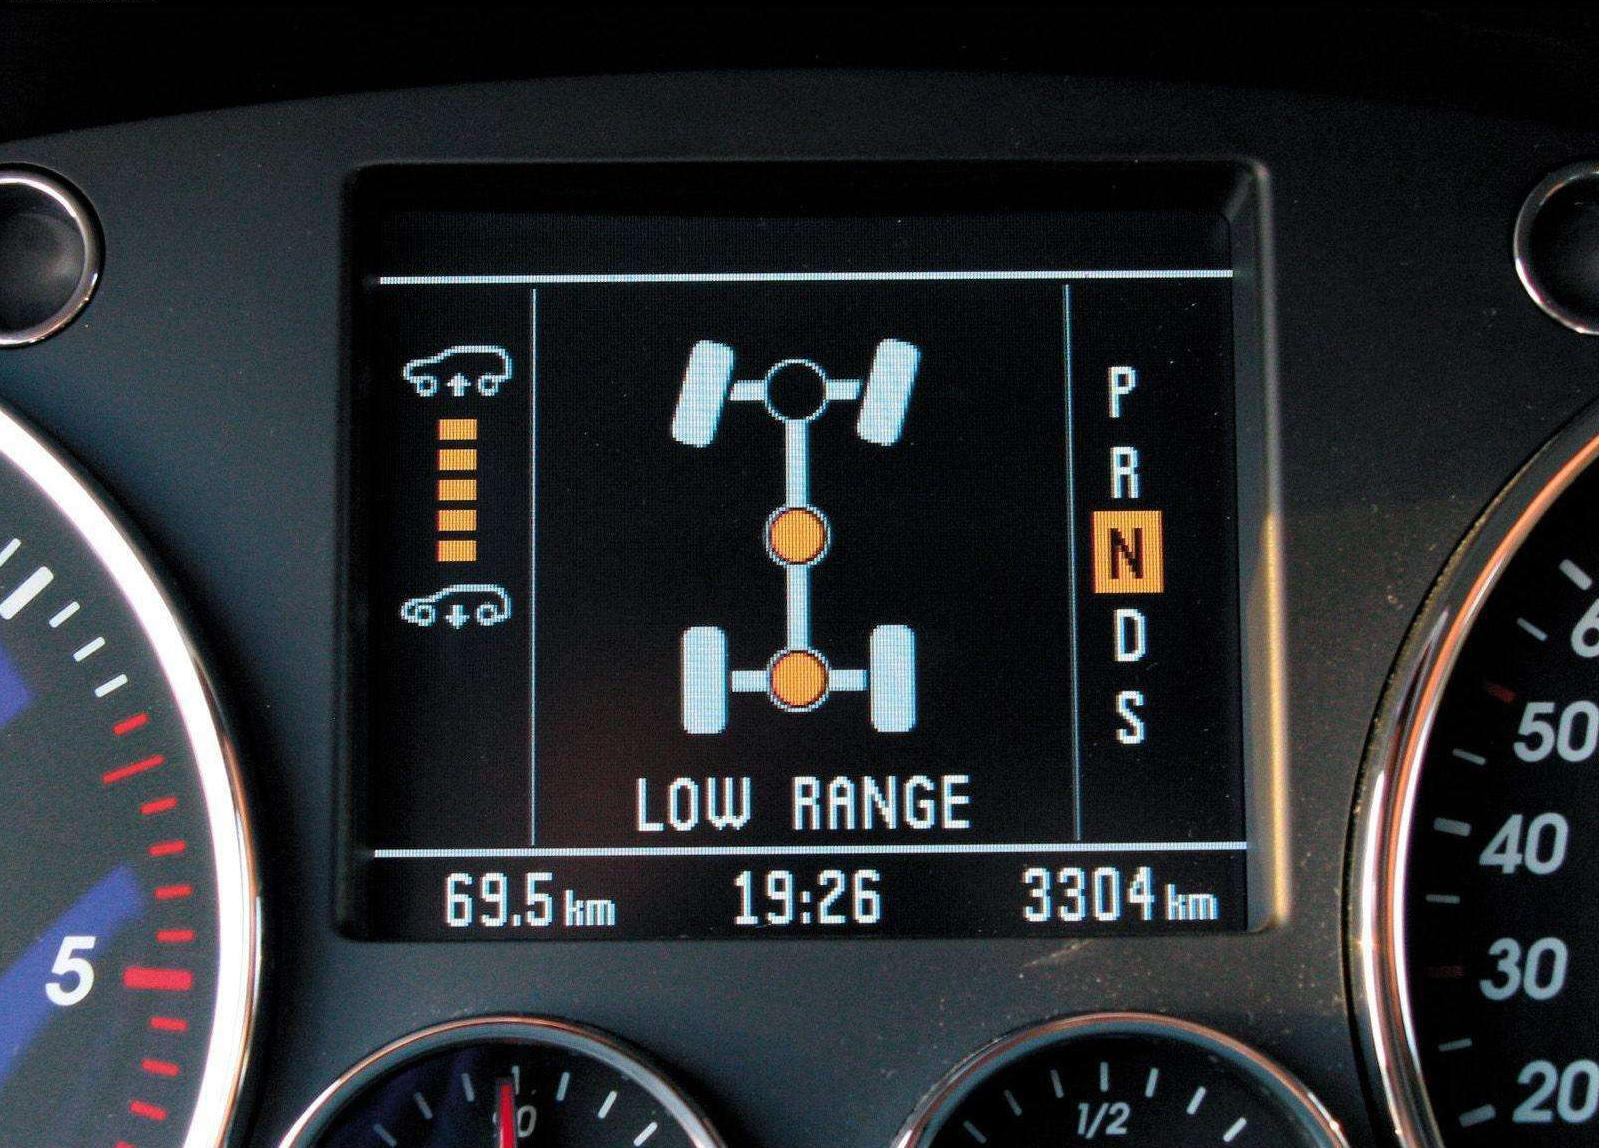 2003_VW_Touareg_AWD_Display